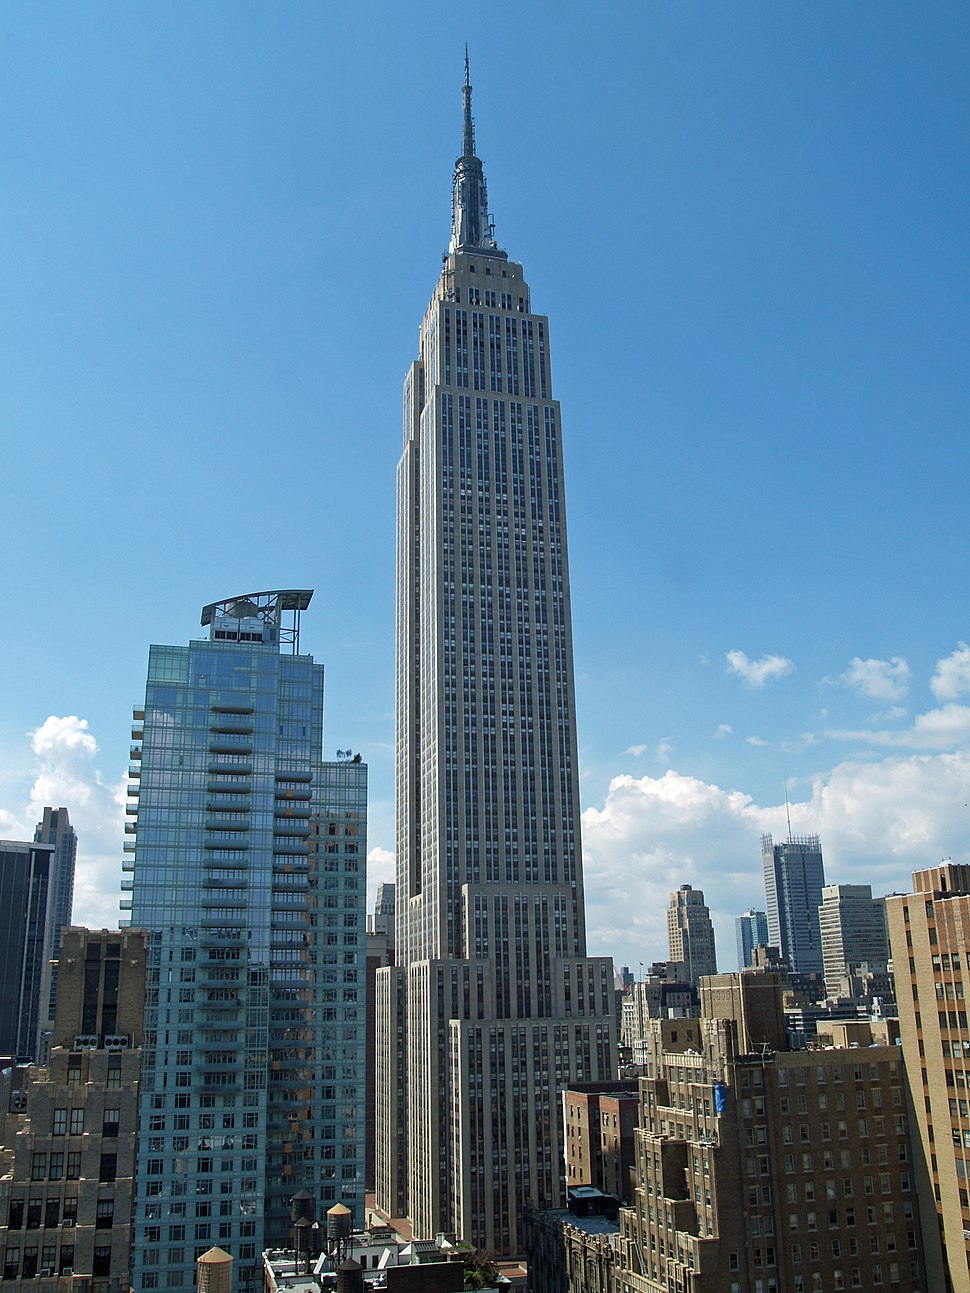 The Empire State Building was the world's tallest building from 1931 to 1972, and the city's tallest from 2001 to 2014.